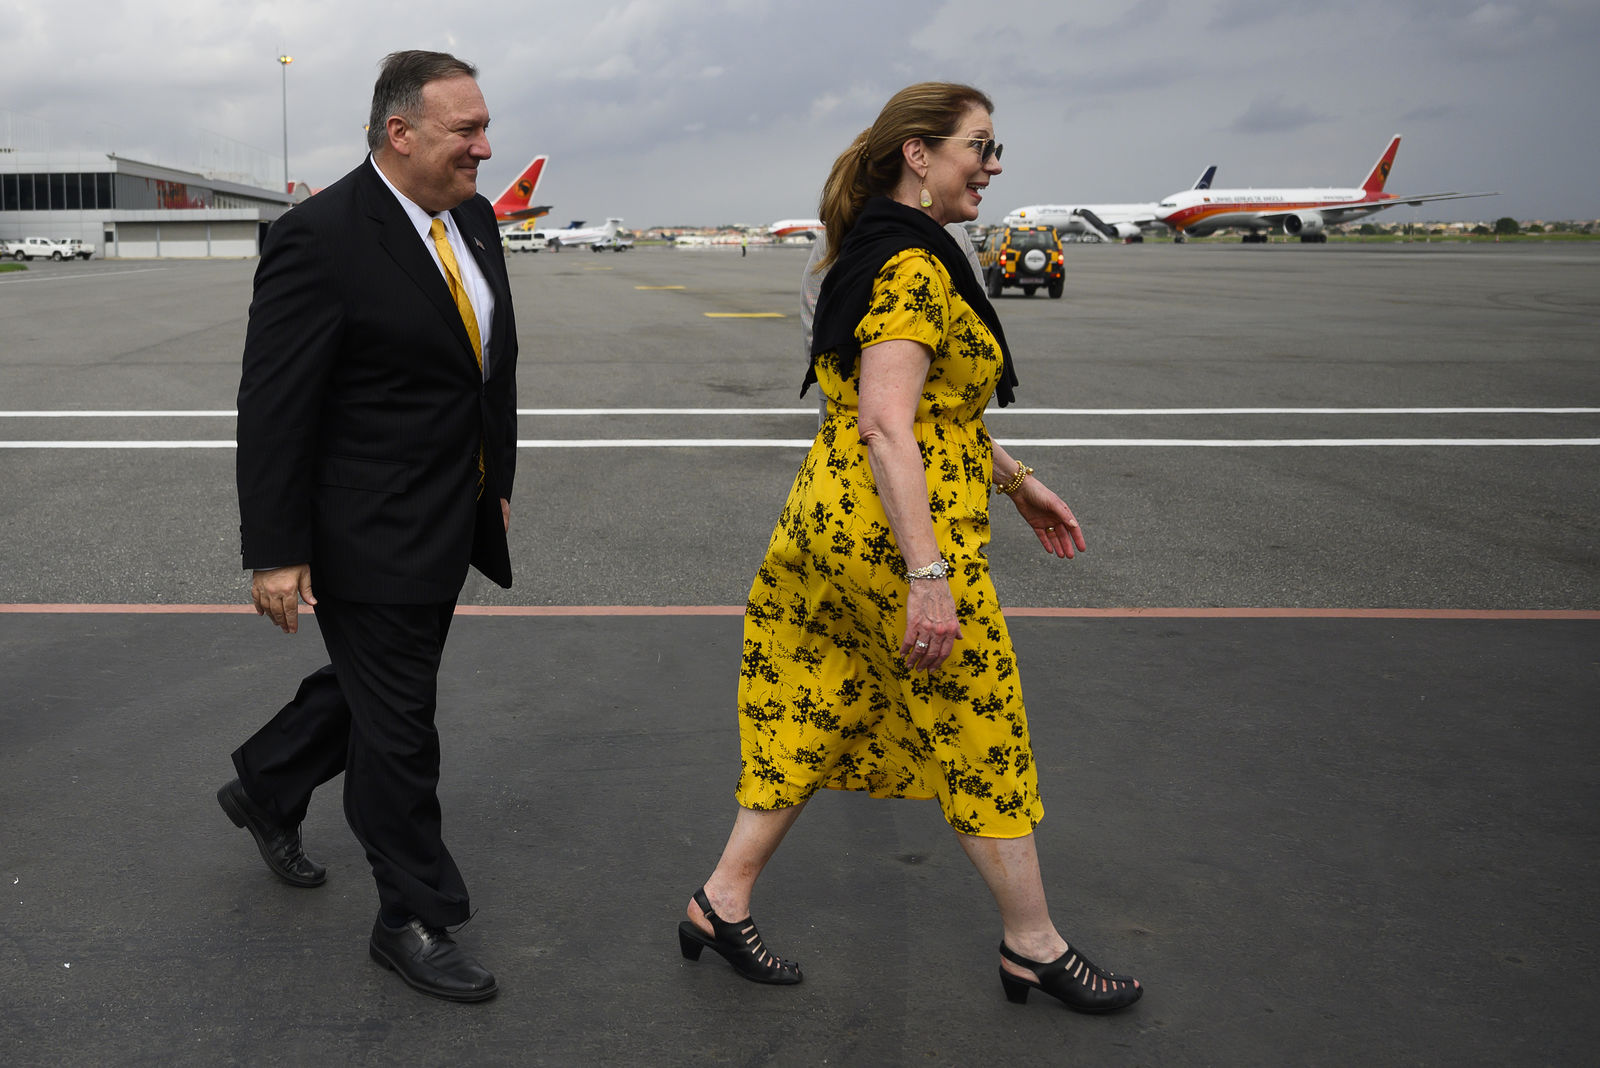 US Secretary of State, Mike Pompeo, right, and his wife, Susan Pompeo walk on the tarmac before leaving Angola at the Luanda International Airport in Luanda, Angola, Monday Feb. 17, 2020. (Andrew Caballero-Reynolds/Pool via AP)